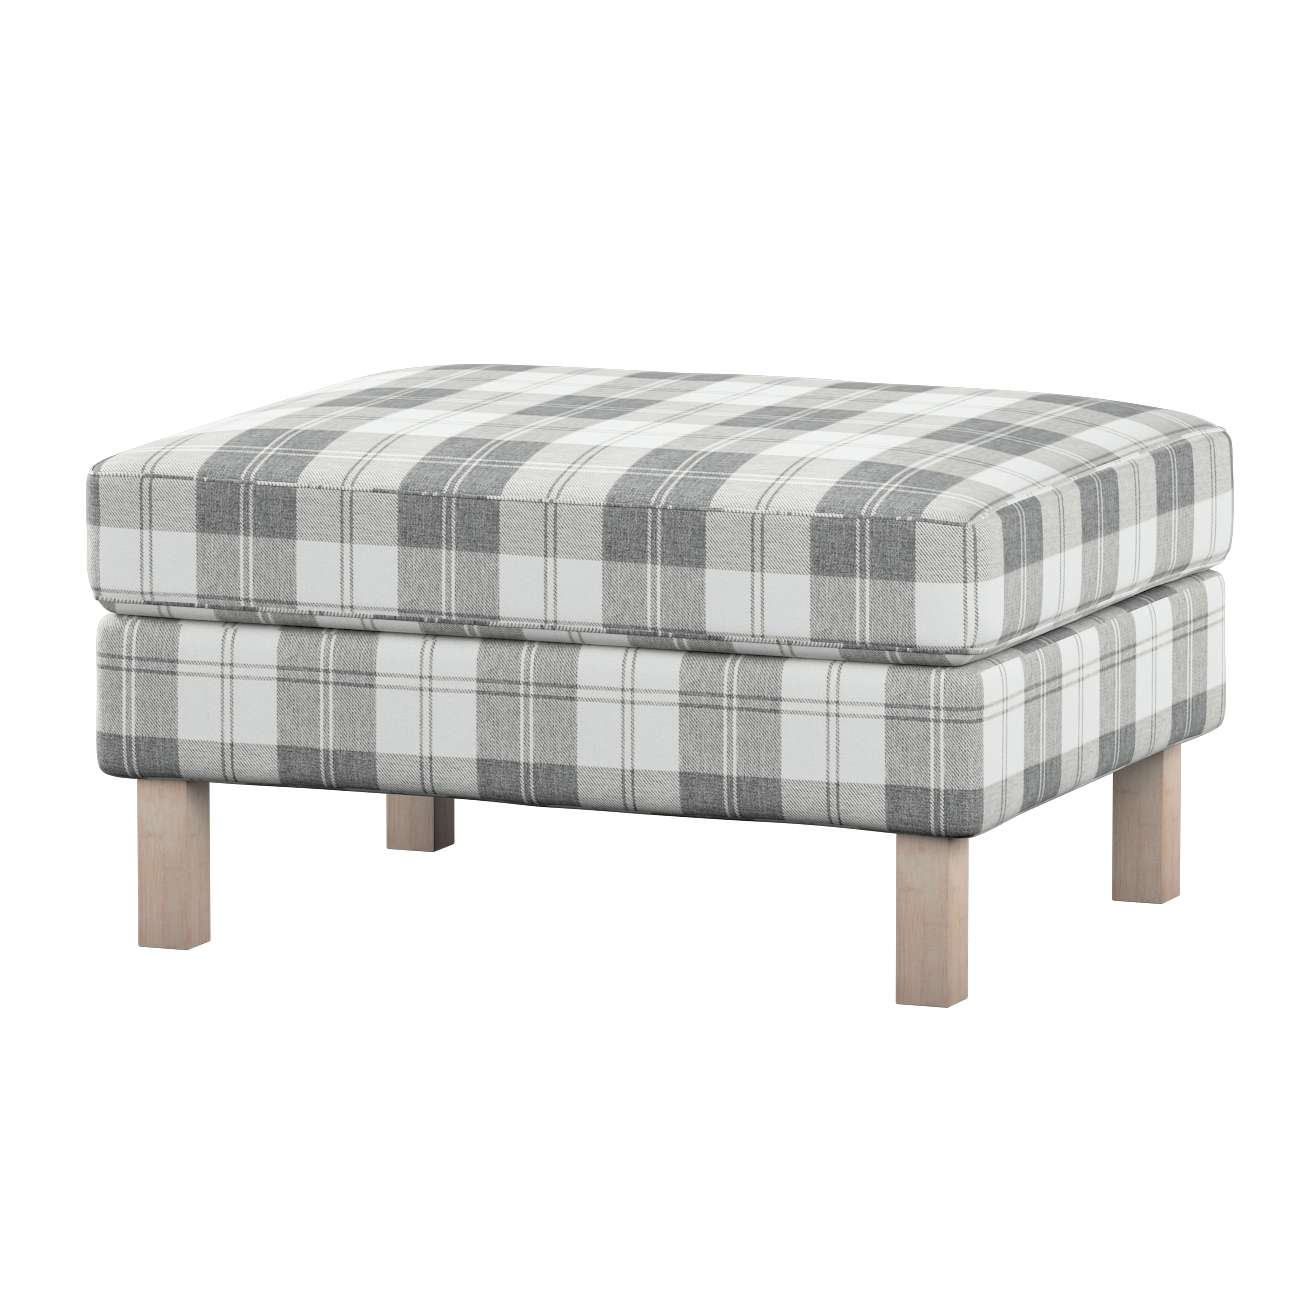 Karlstad footstool cover Karlstad footstool cover in collection Edinburgh, fabric: 115-79